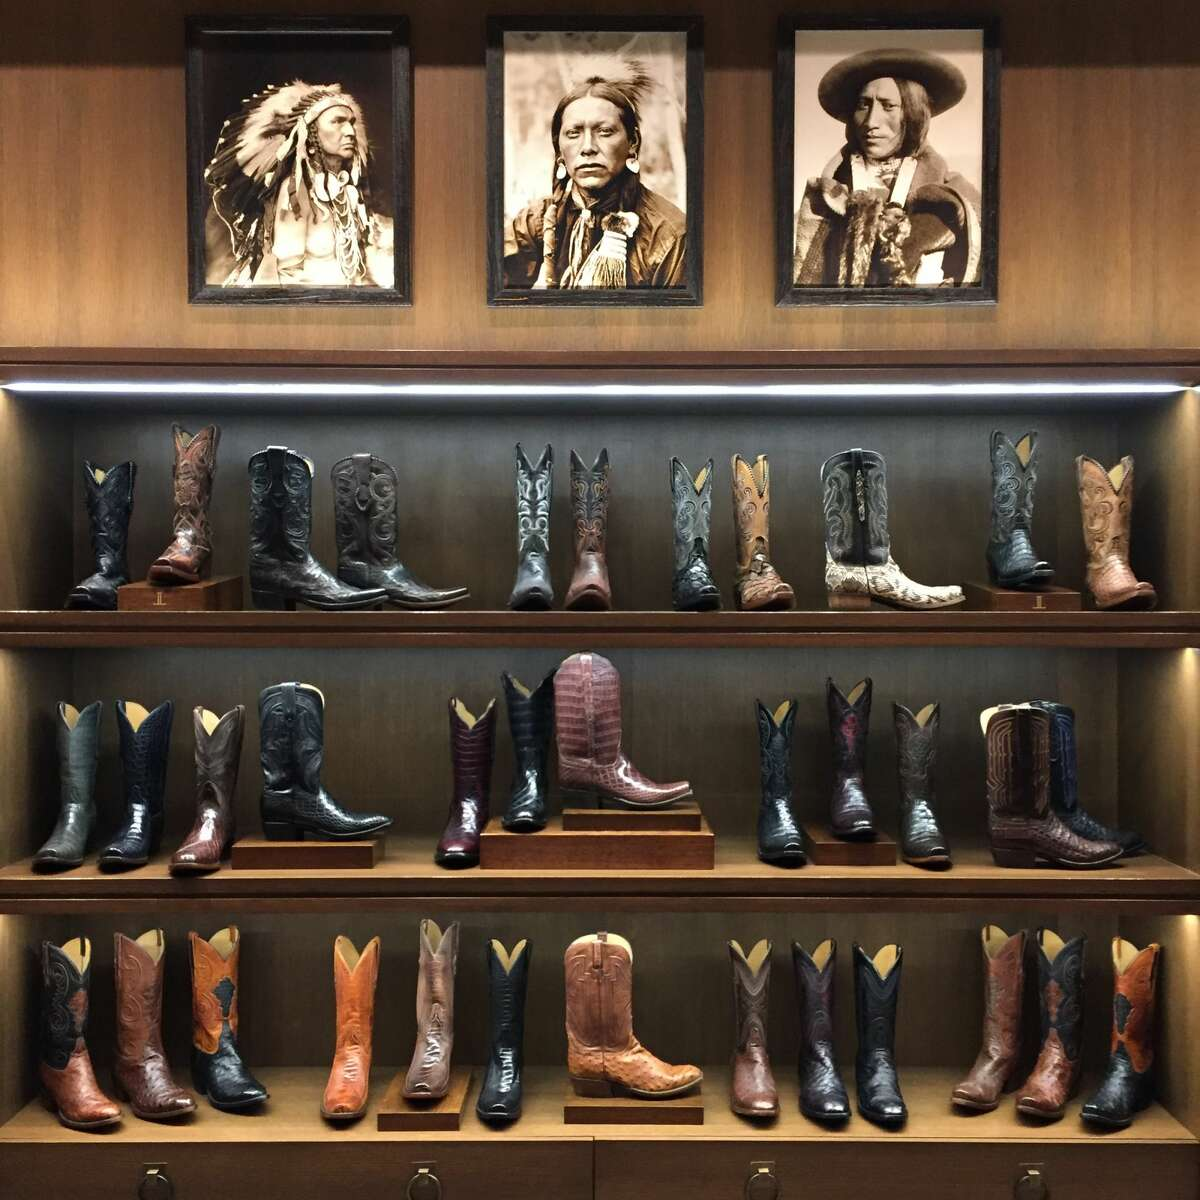 PHOTOS: The story of Lucchese boots, a true Texas original Lucchese is one of the most iconic brands to come out of Texas since Sam Houston and the boys laid the smack down on Santa Ana's cronies at San Jacinto in 1836. Learn more about the brand...